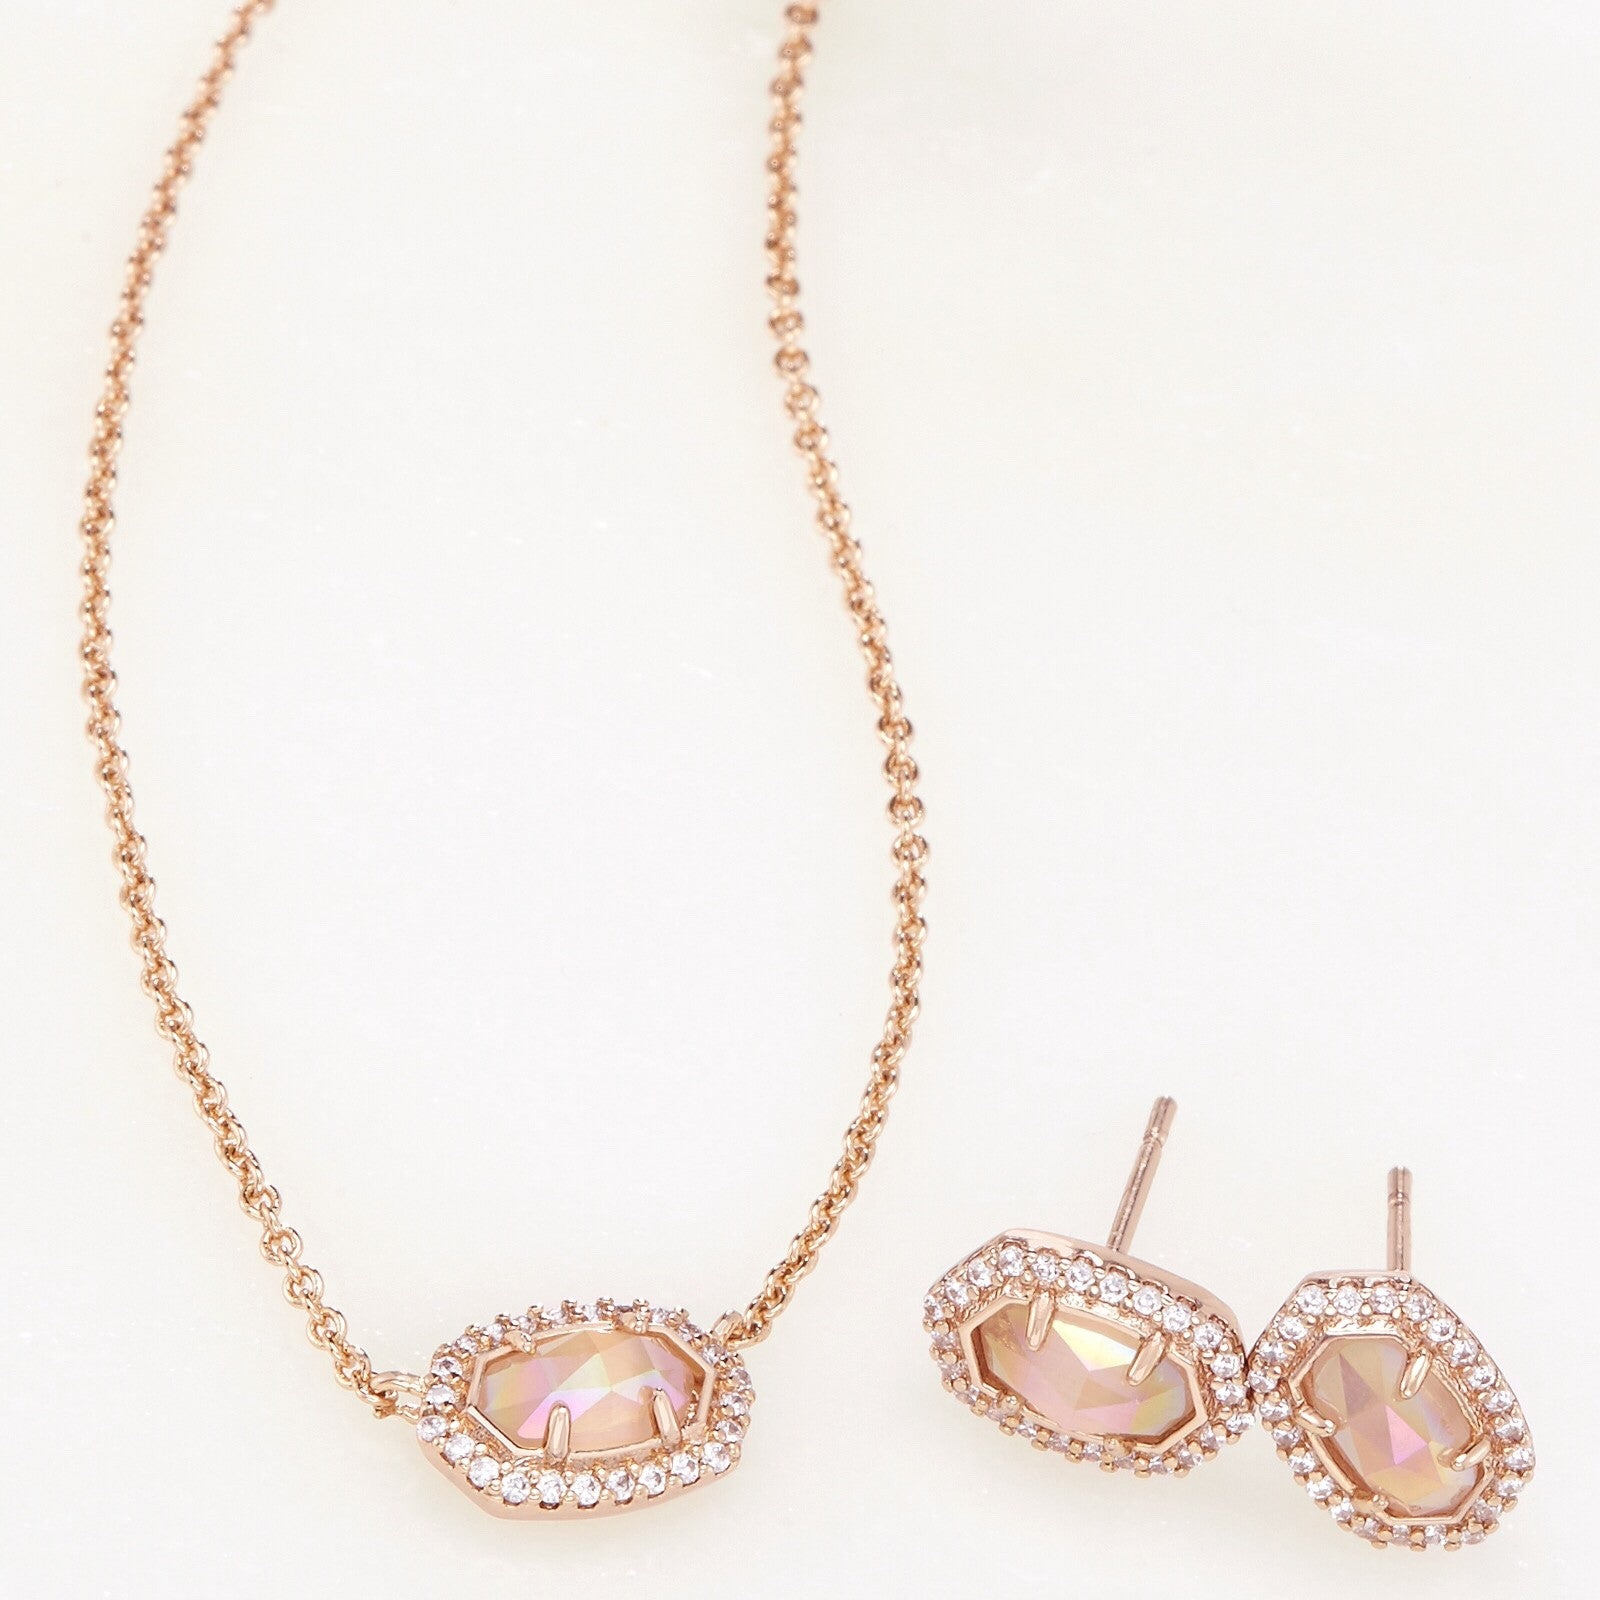 Cade Earrings and Chelsea Necklace Set in Iridescent Peach Cat